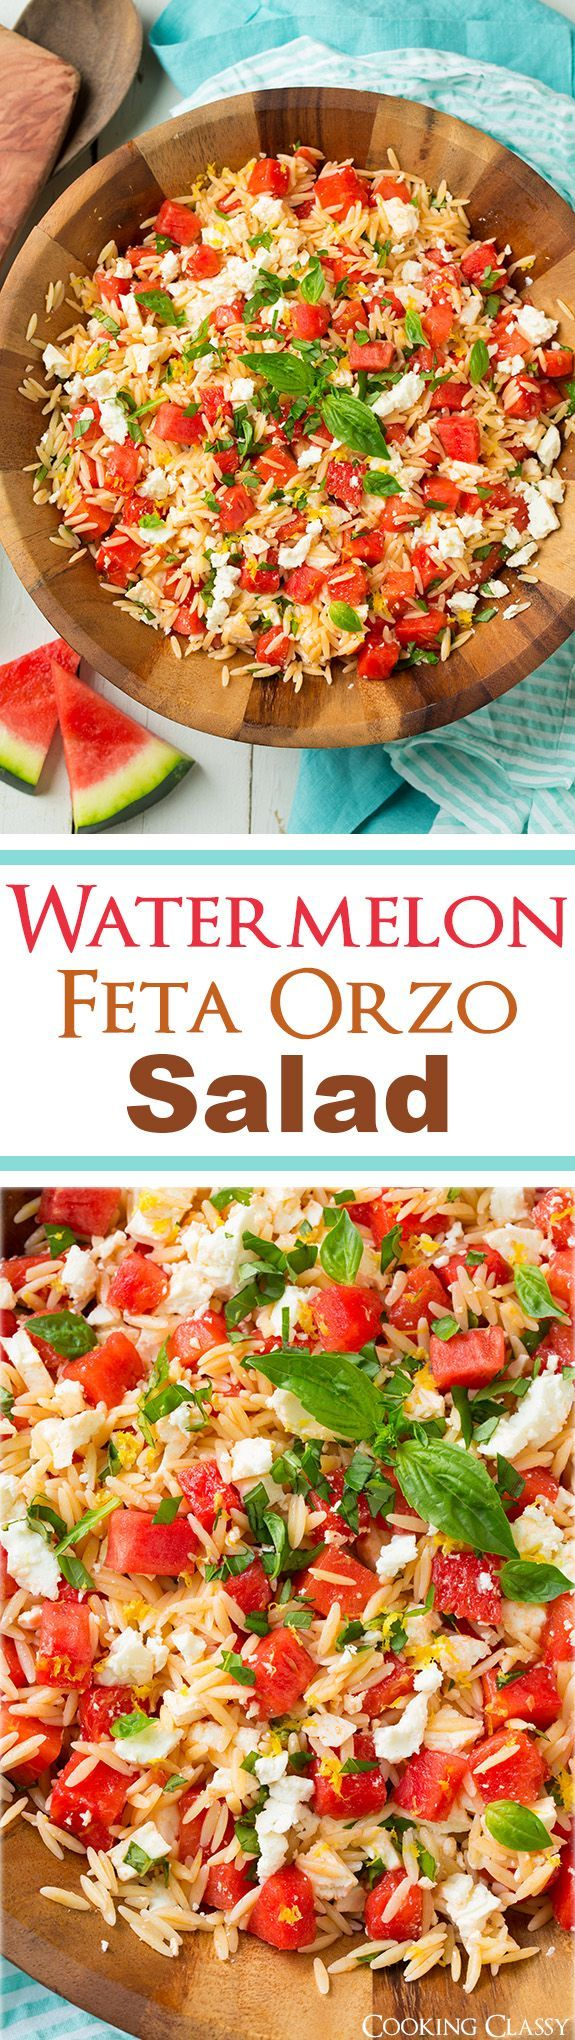 Watermelon Feta Orzo Salad with Lemon and Basil - This is one of my ...